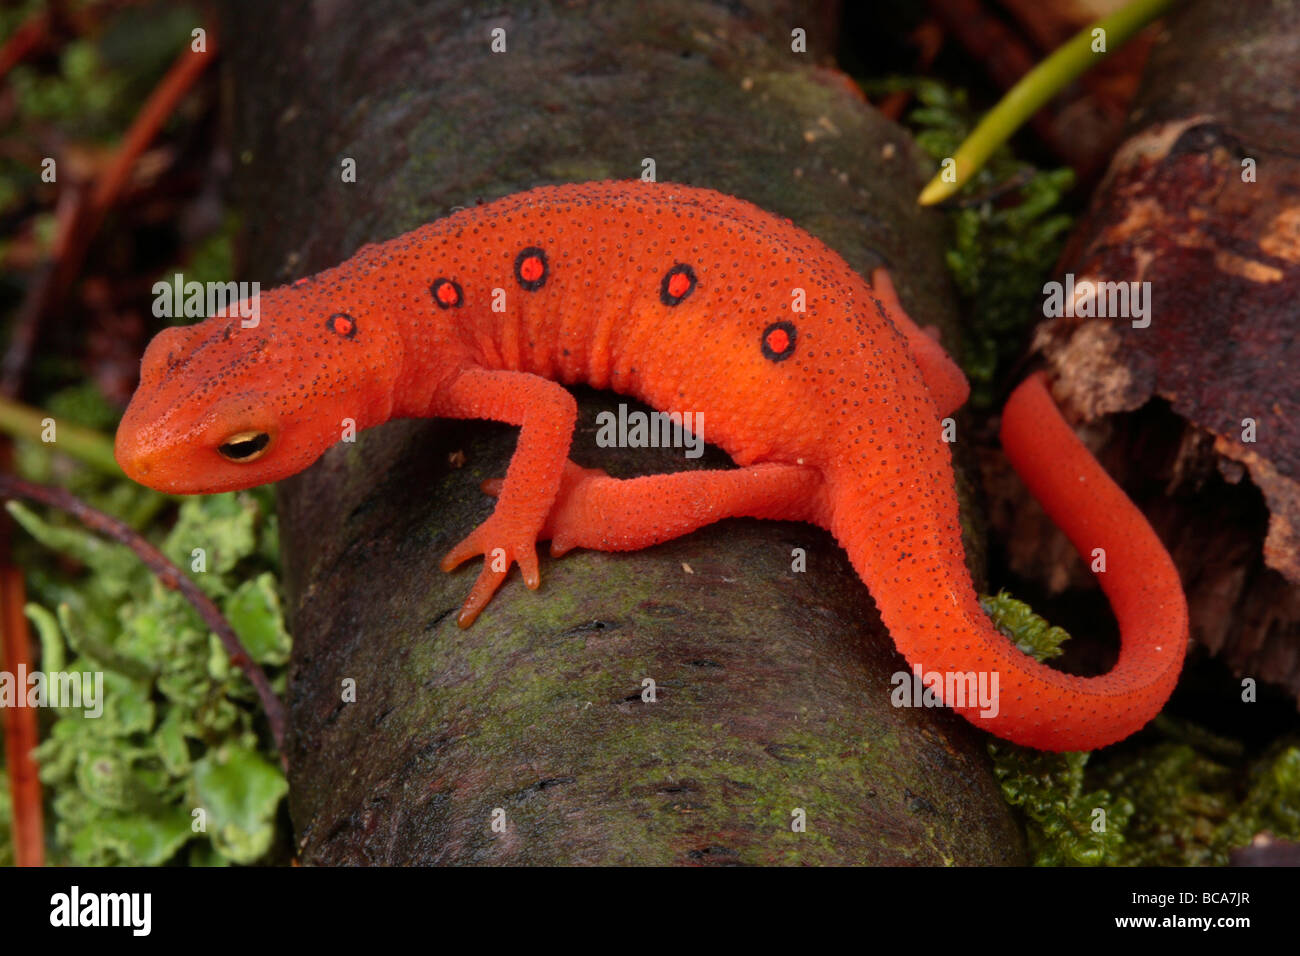 Image result for images of red efts